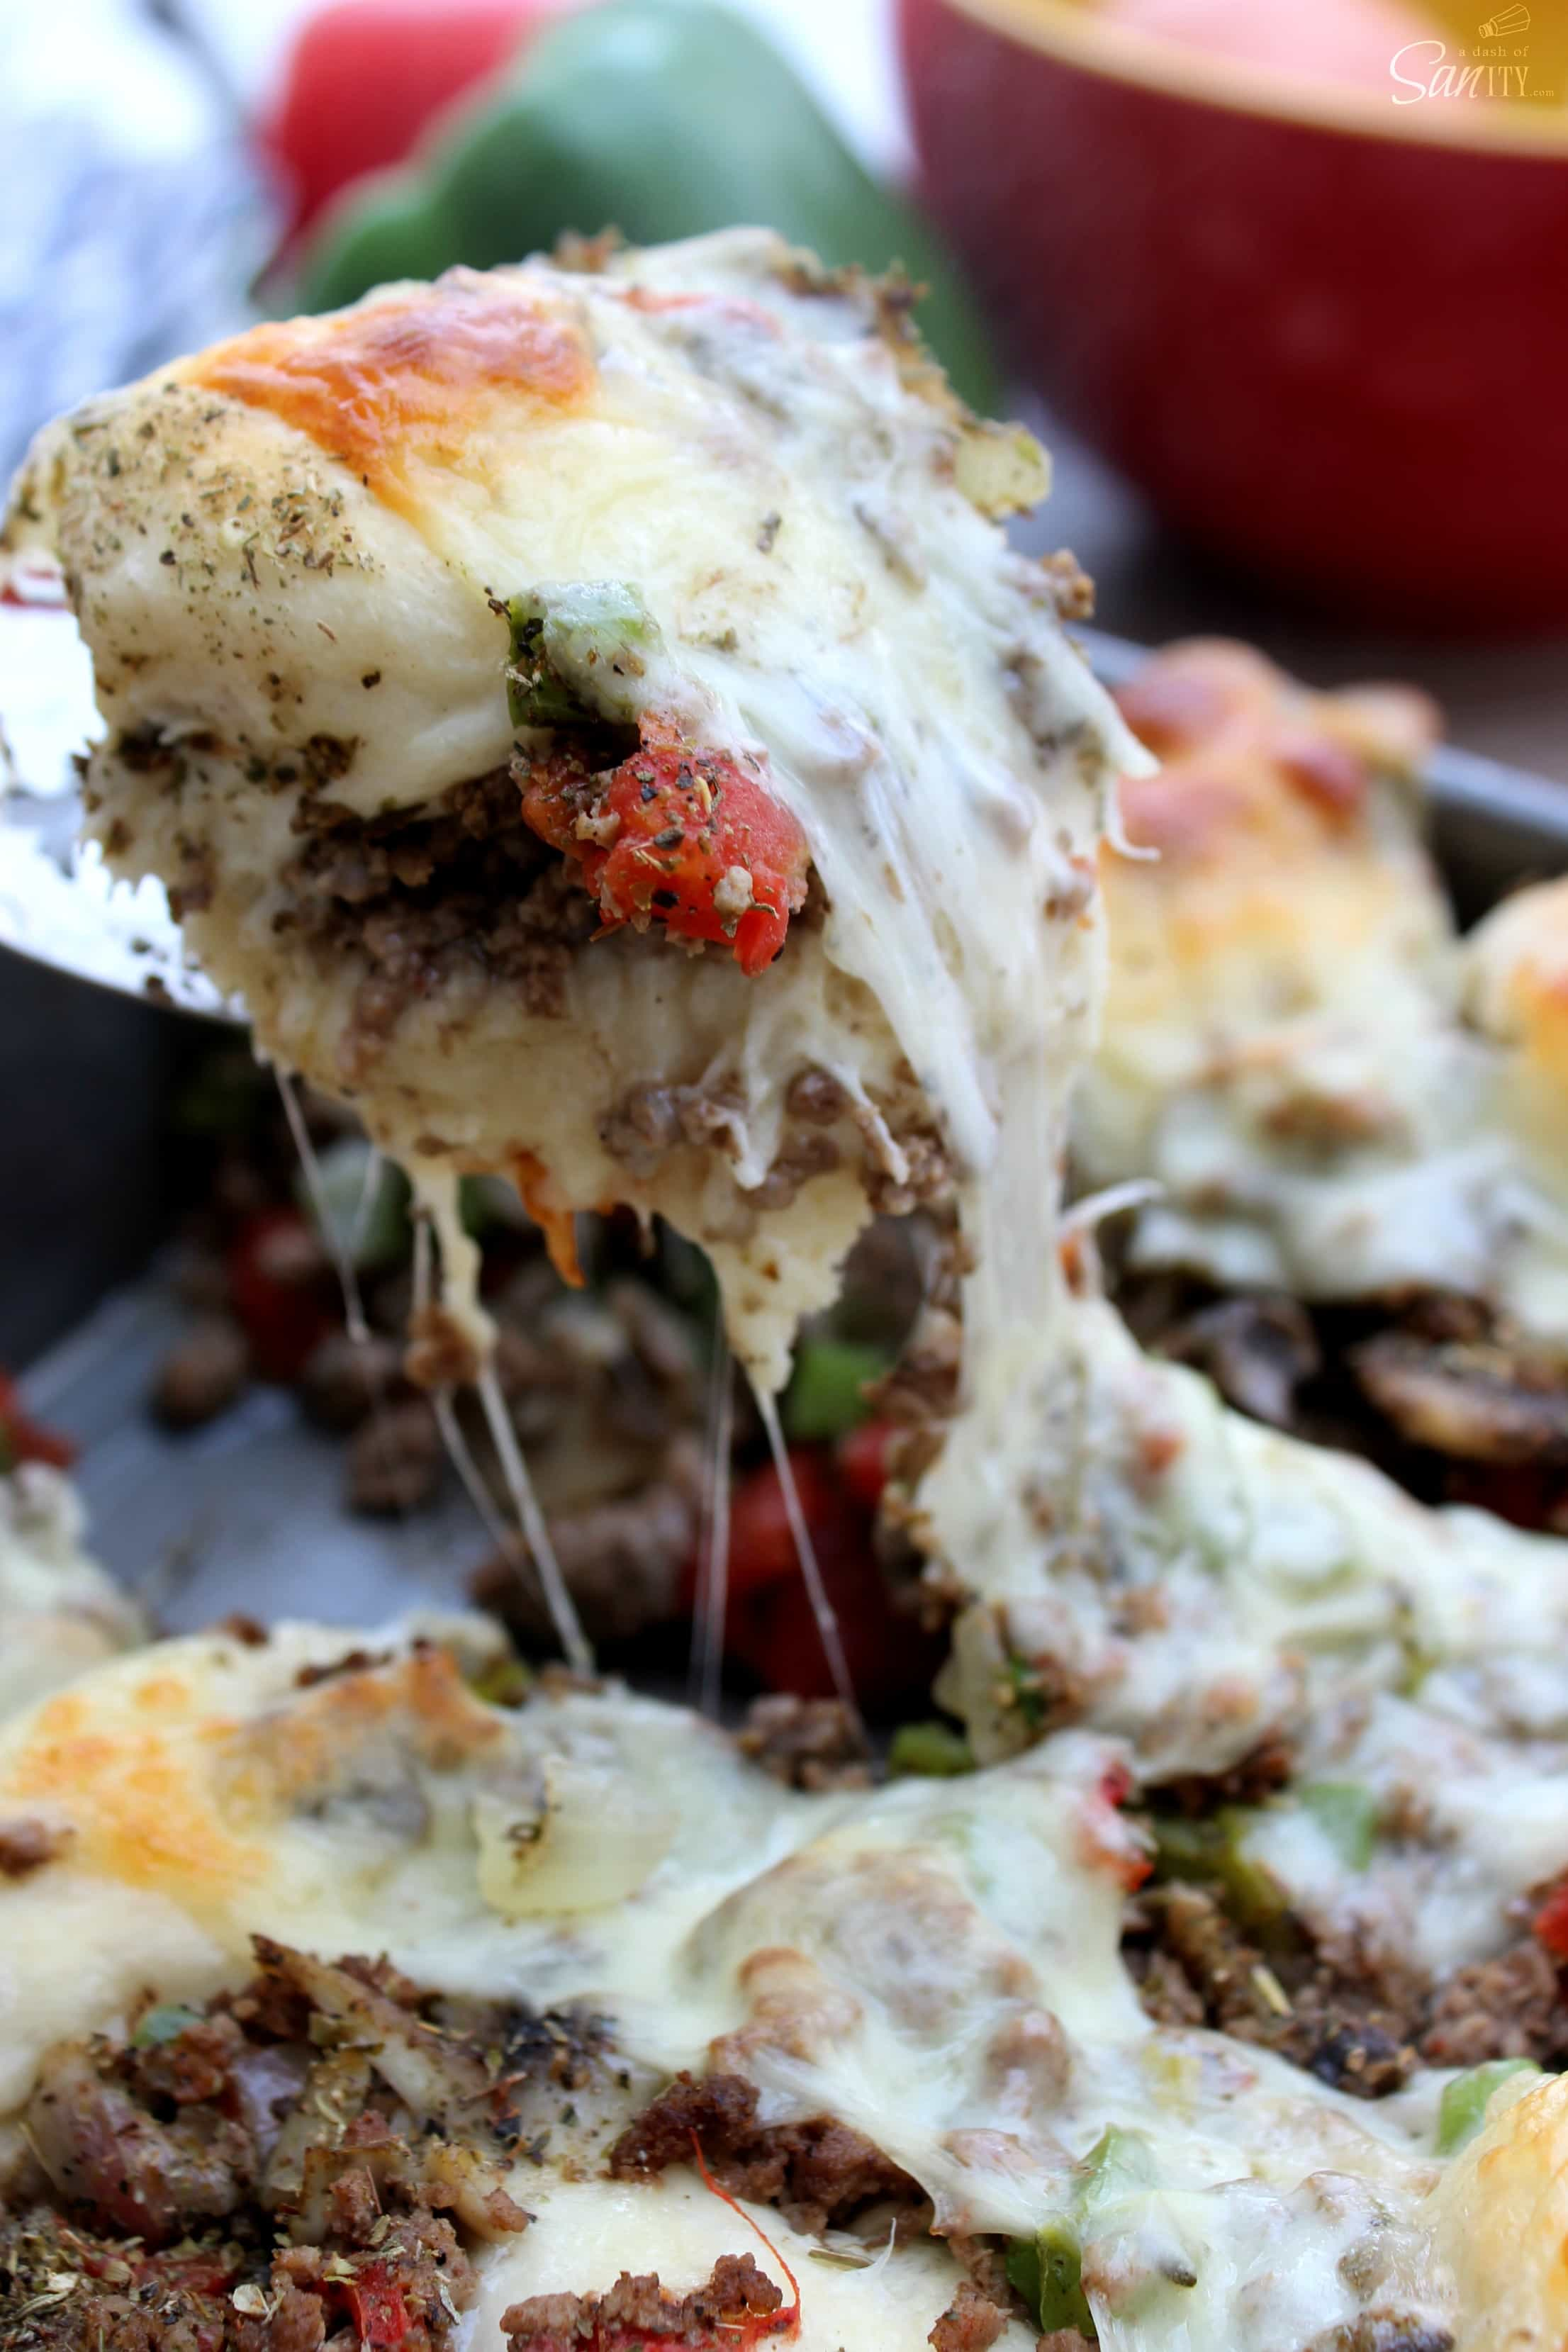 These Cheesy Pull Apart Italian Subs are so easy and delicious! Made with all the delicious toppings that are found in a traditional Italian Sub.